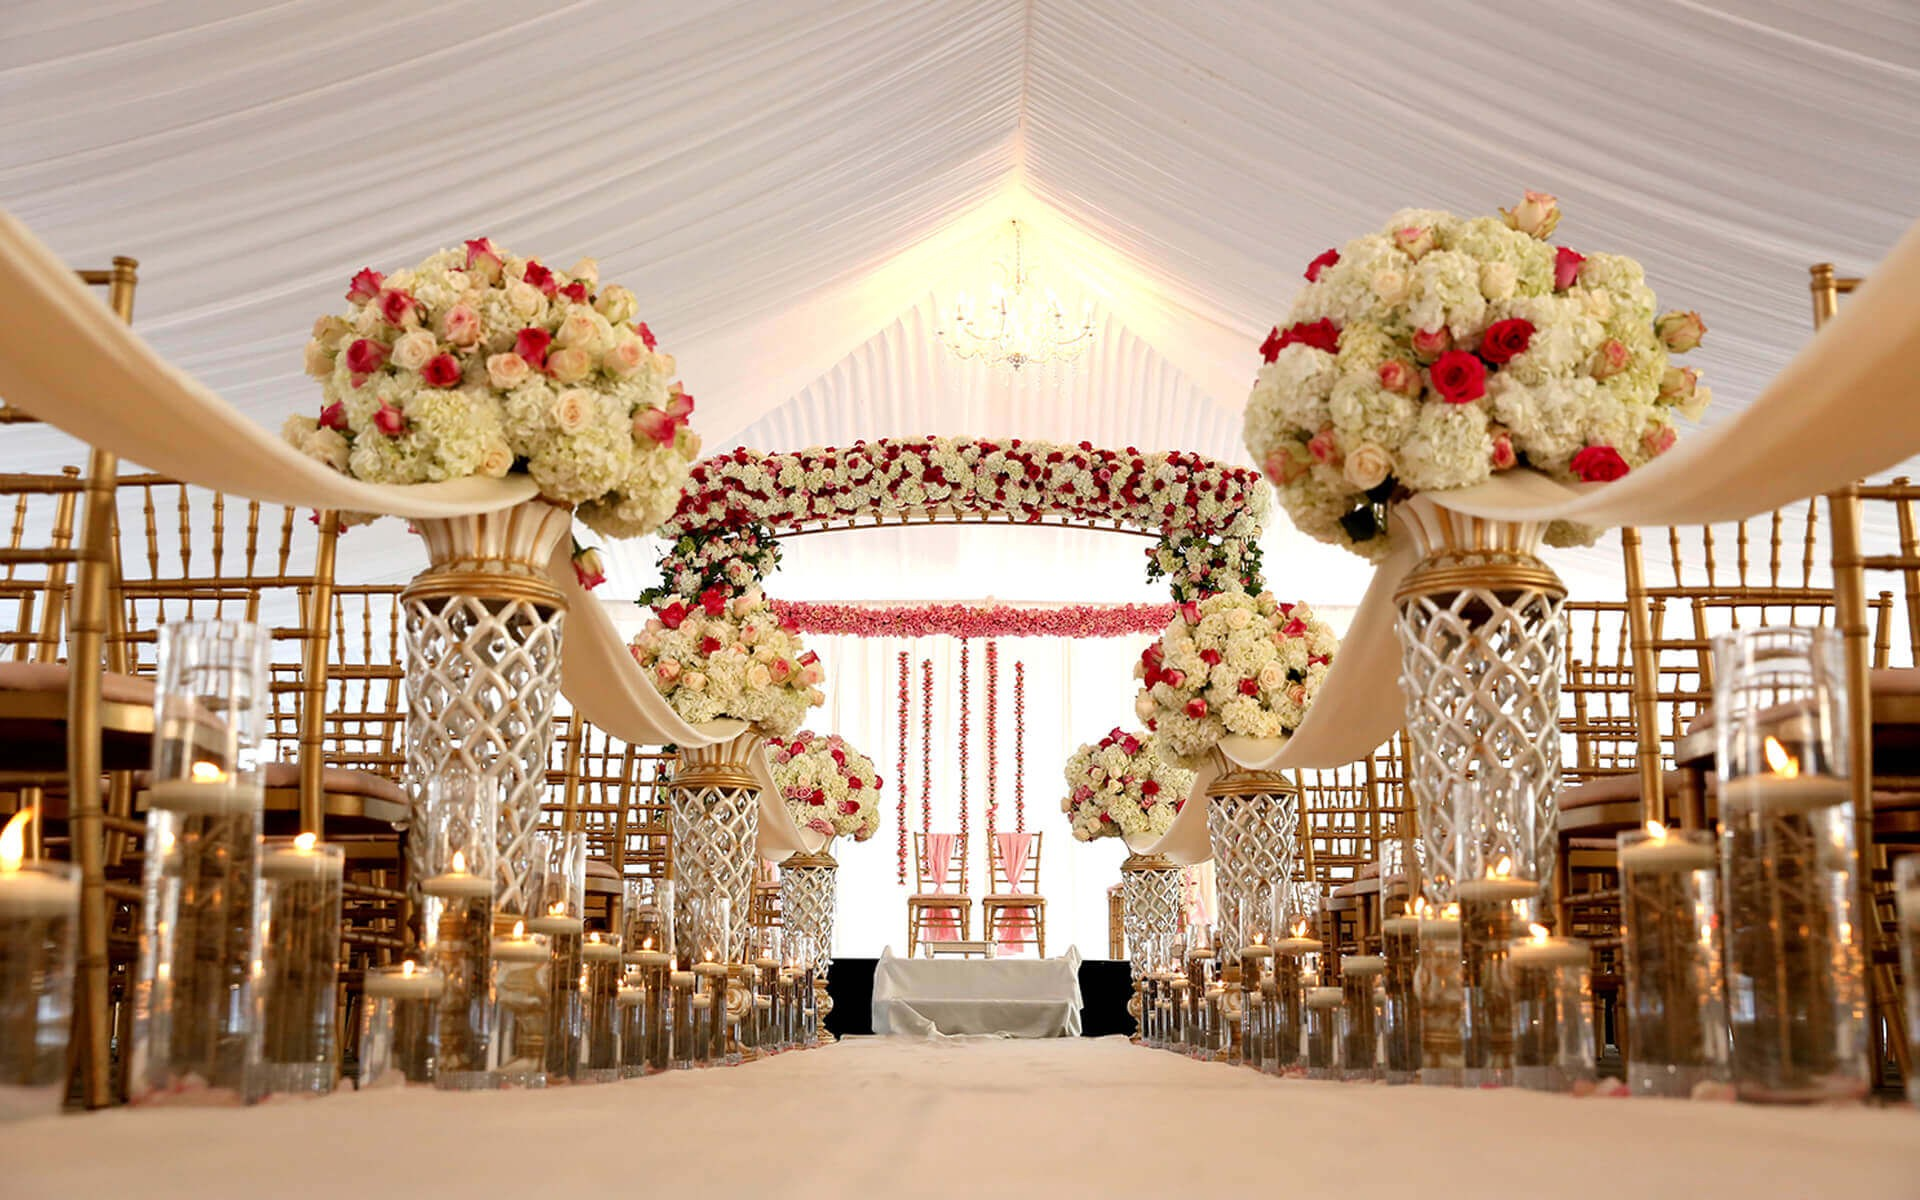 Wedding Decorations Hire near me